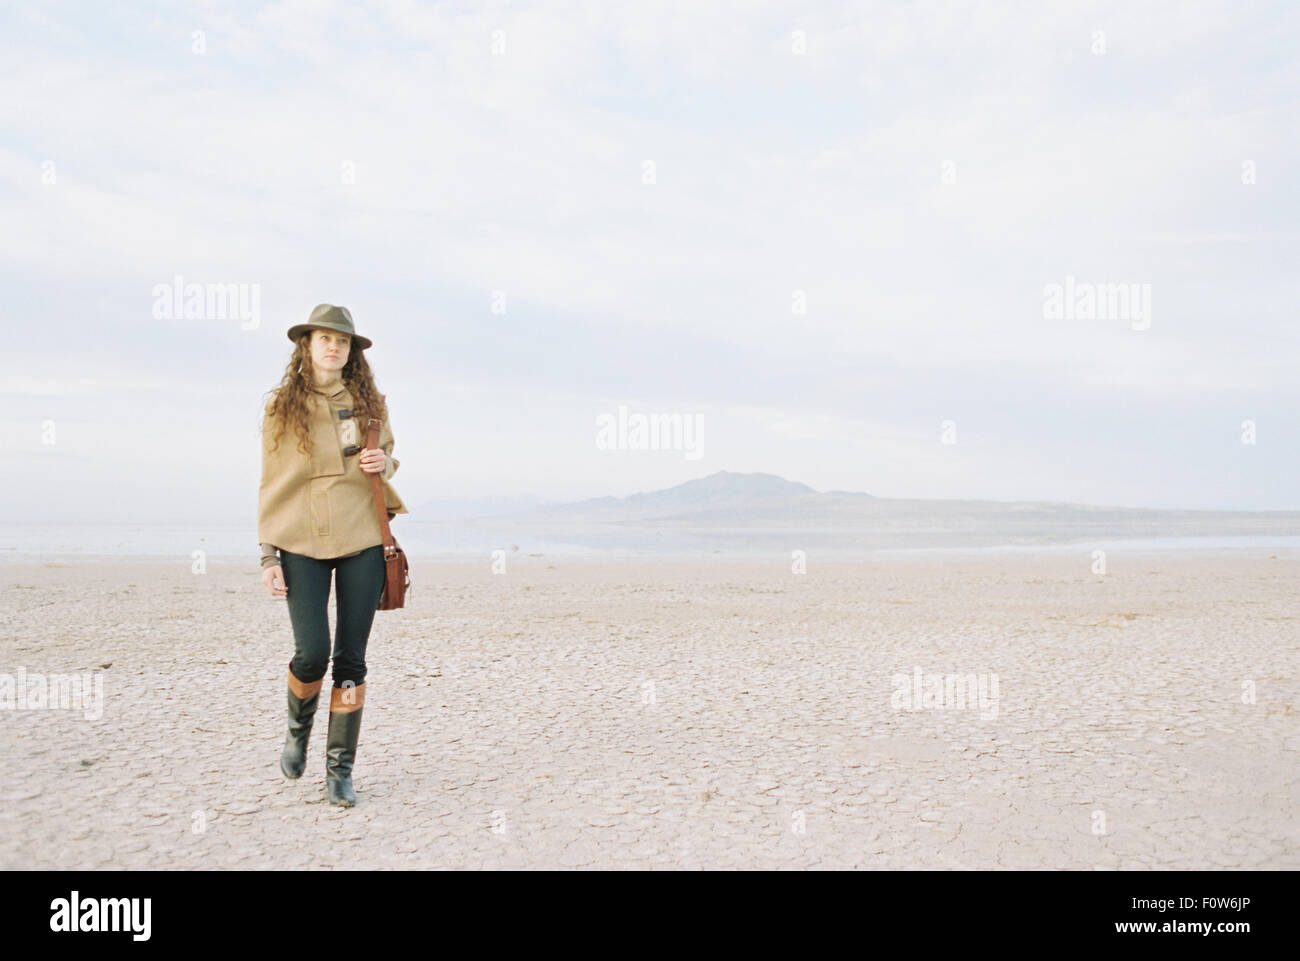 A woman with brown, long and curly hair walking through a desert plain, wearing a hat and carrying a leather bag. - Stock Image